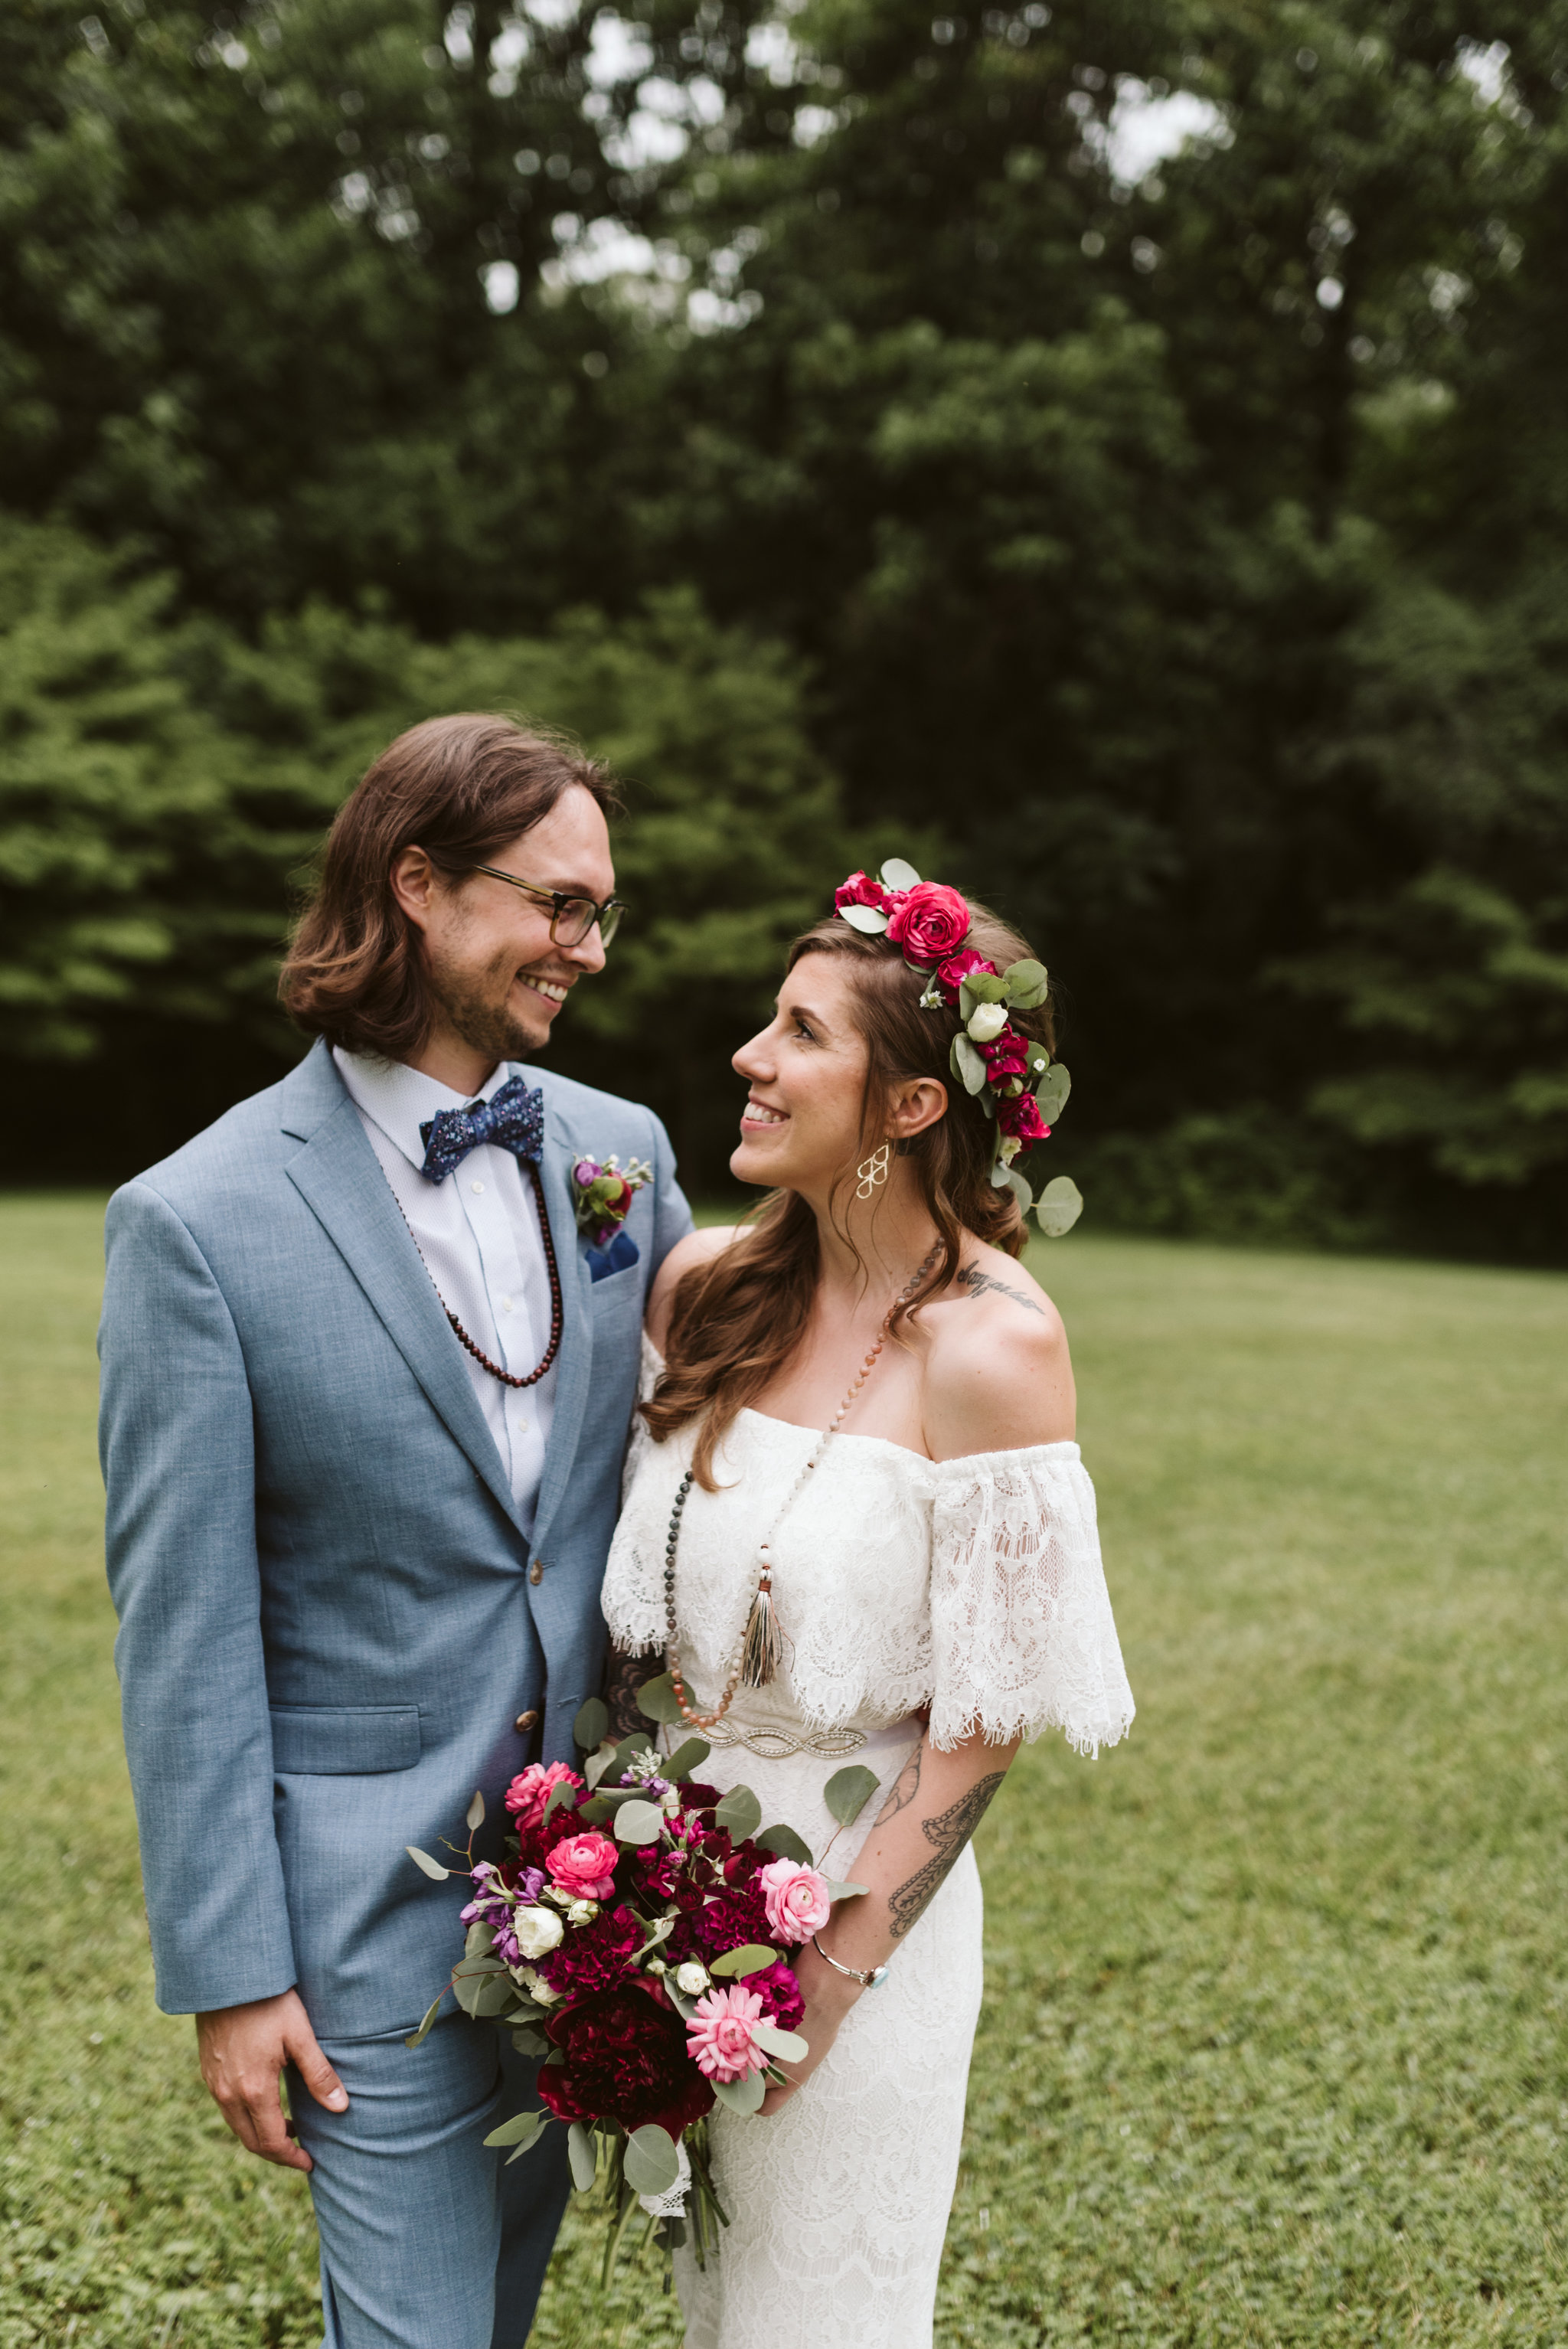 Annapolis, Quaker Wedding, Maryland Wedding Photographer, Intimate, Small Wedding, Vintage, DIY, Bride and Groom Smiling at Each Other, Outdoor Reception